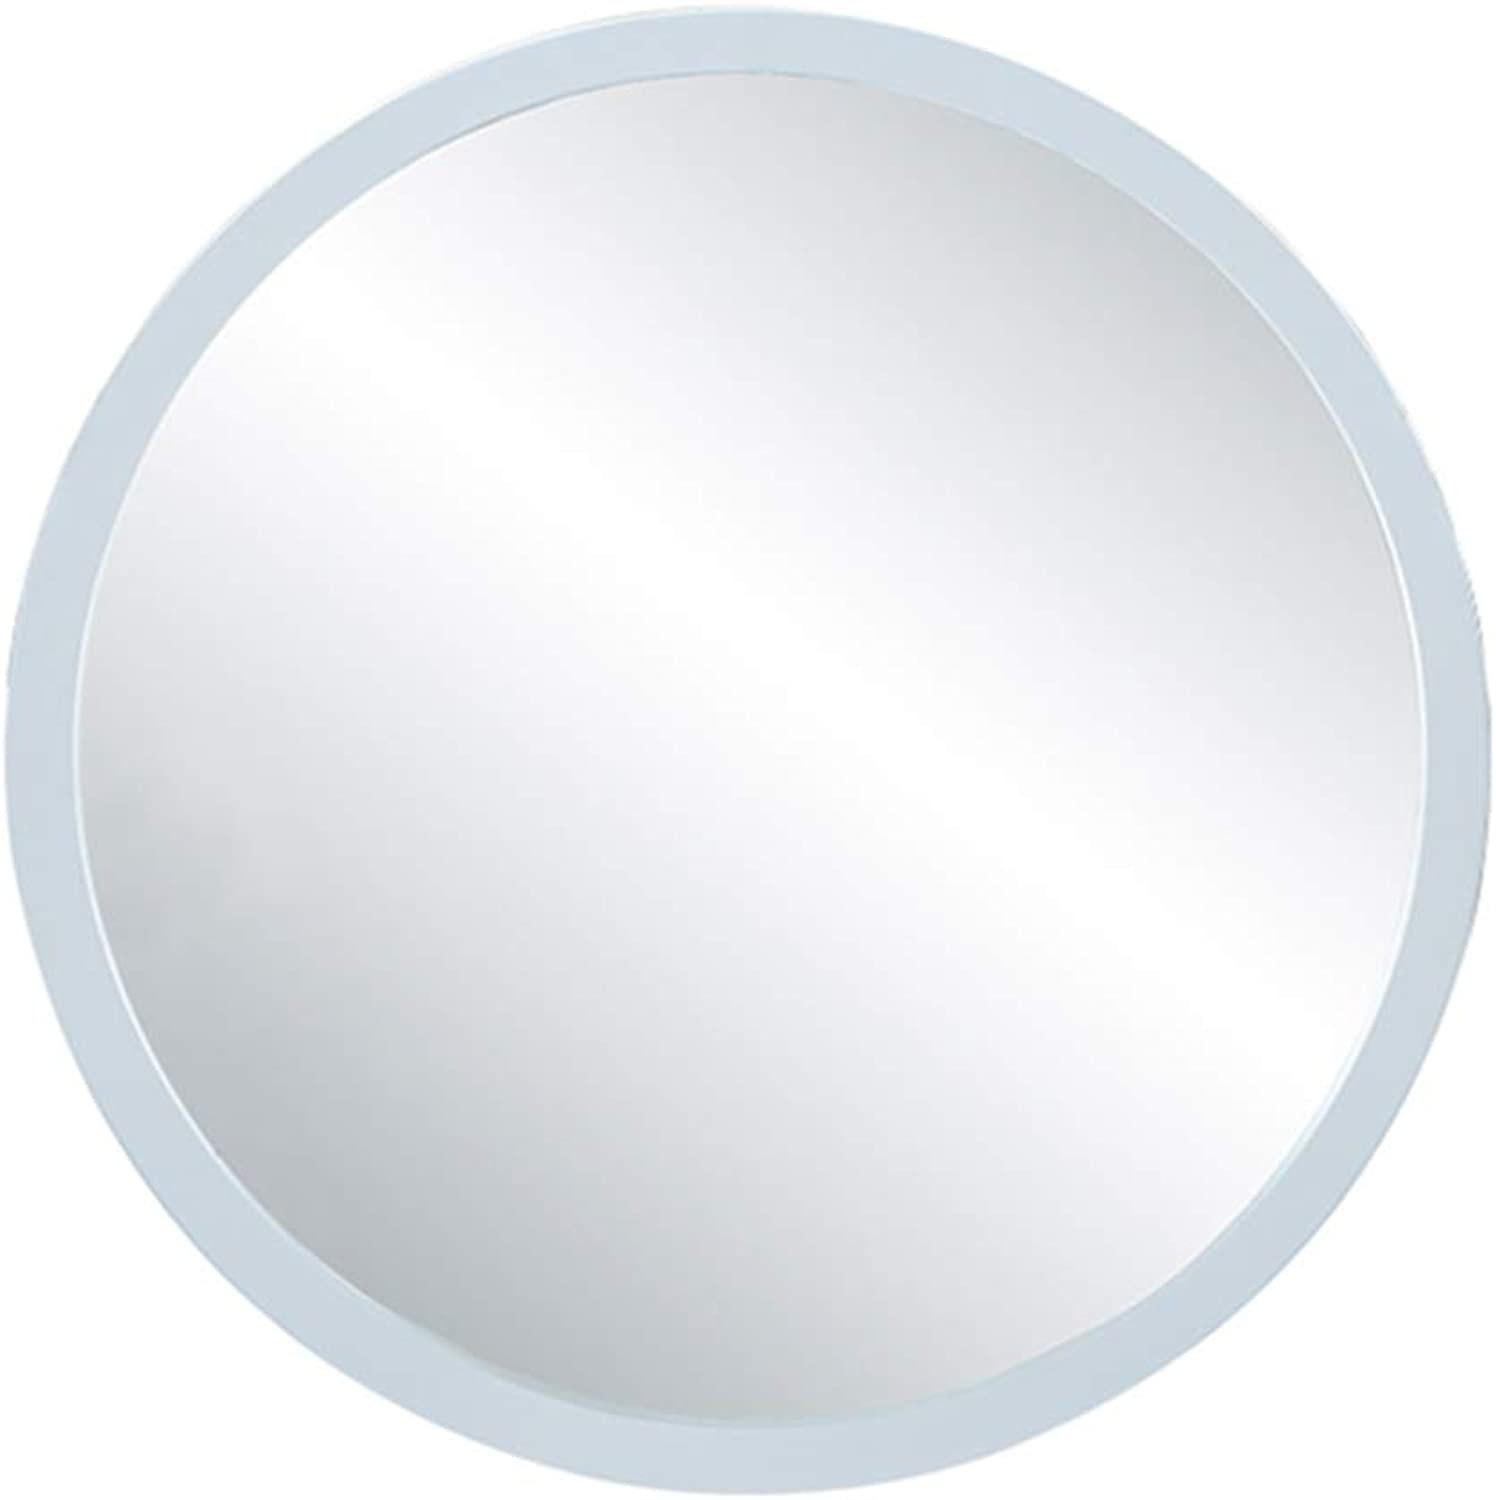 Wall Mirror Simple Wall Hanging Mirror Wooden Frame Dressing Table Mirror Living Room Round Decorative Mirror Wall White Round Silver Mirror (color   White, Size   40cm 15.7inches)